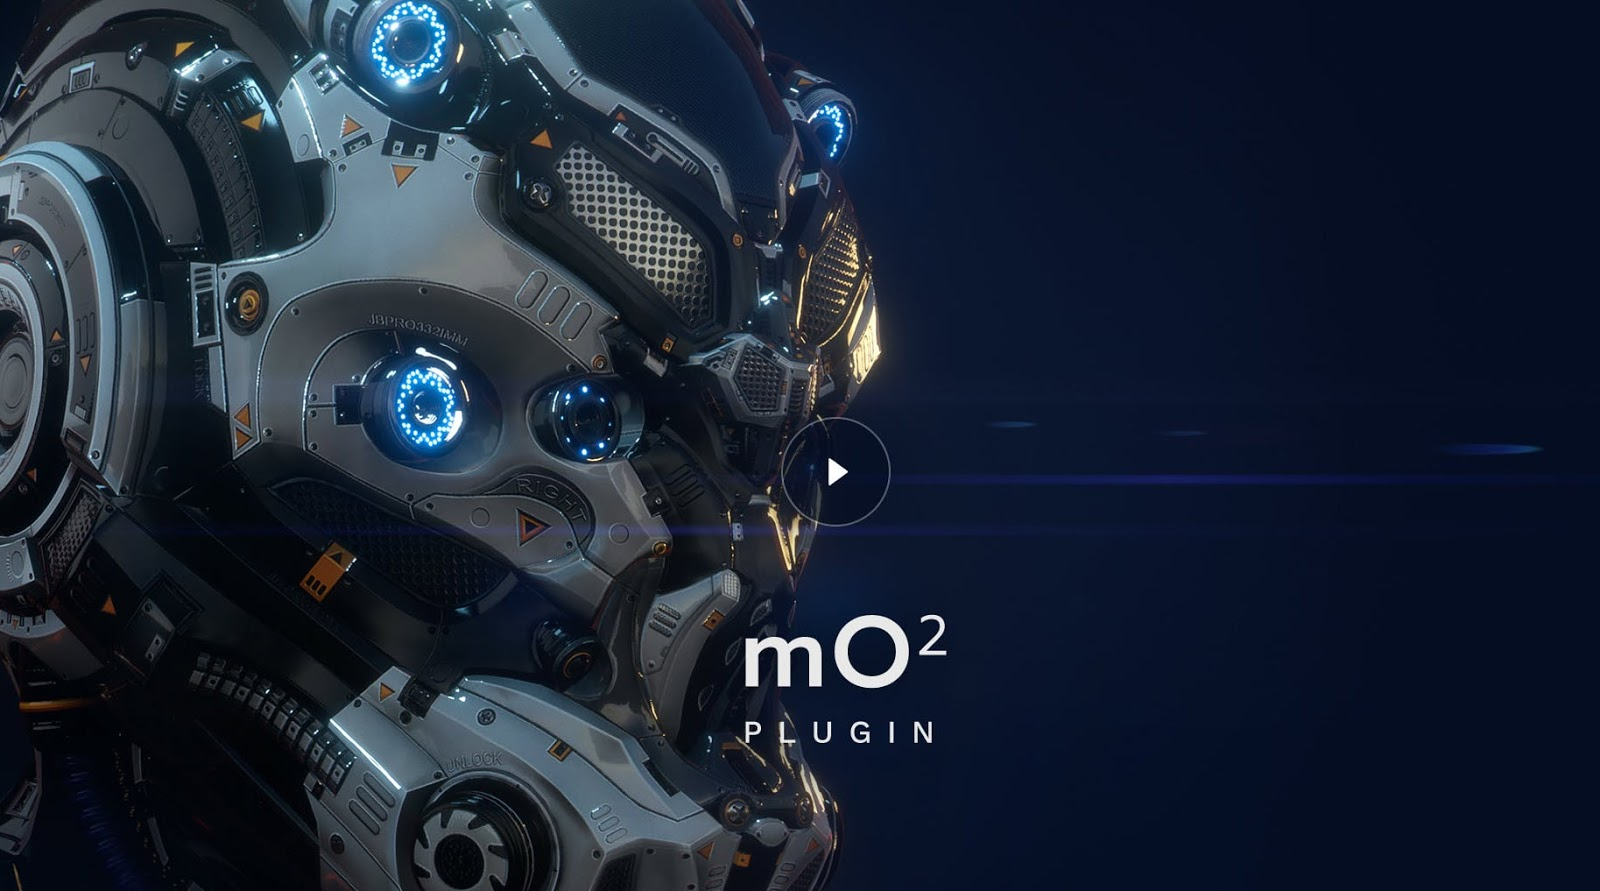 mO2 - Real 3D Rendering Engine Plugin for FCPX and Apple Motion